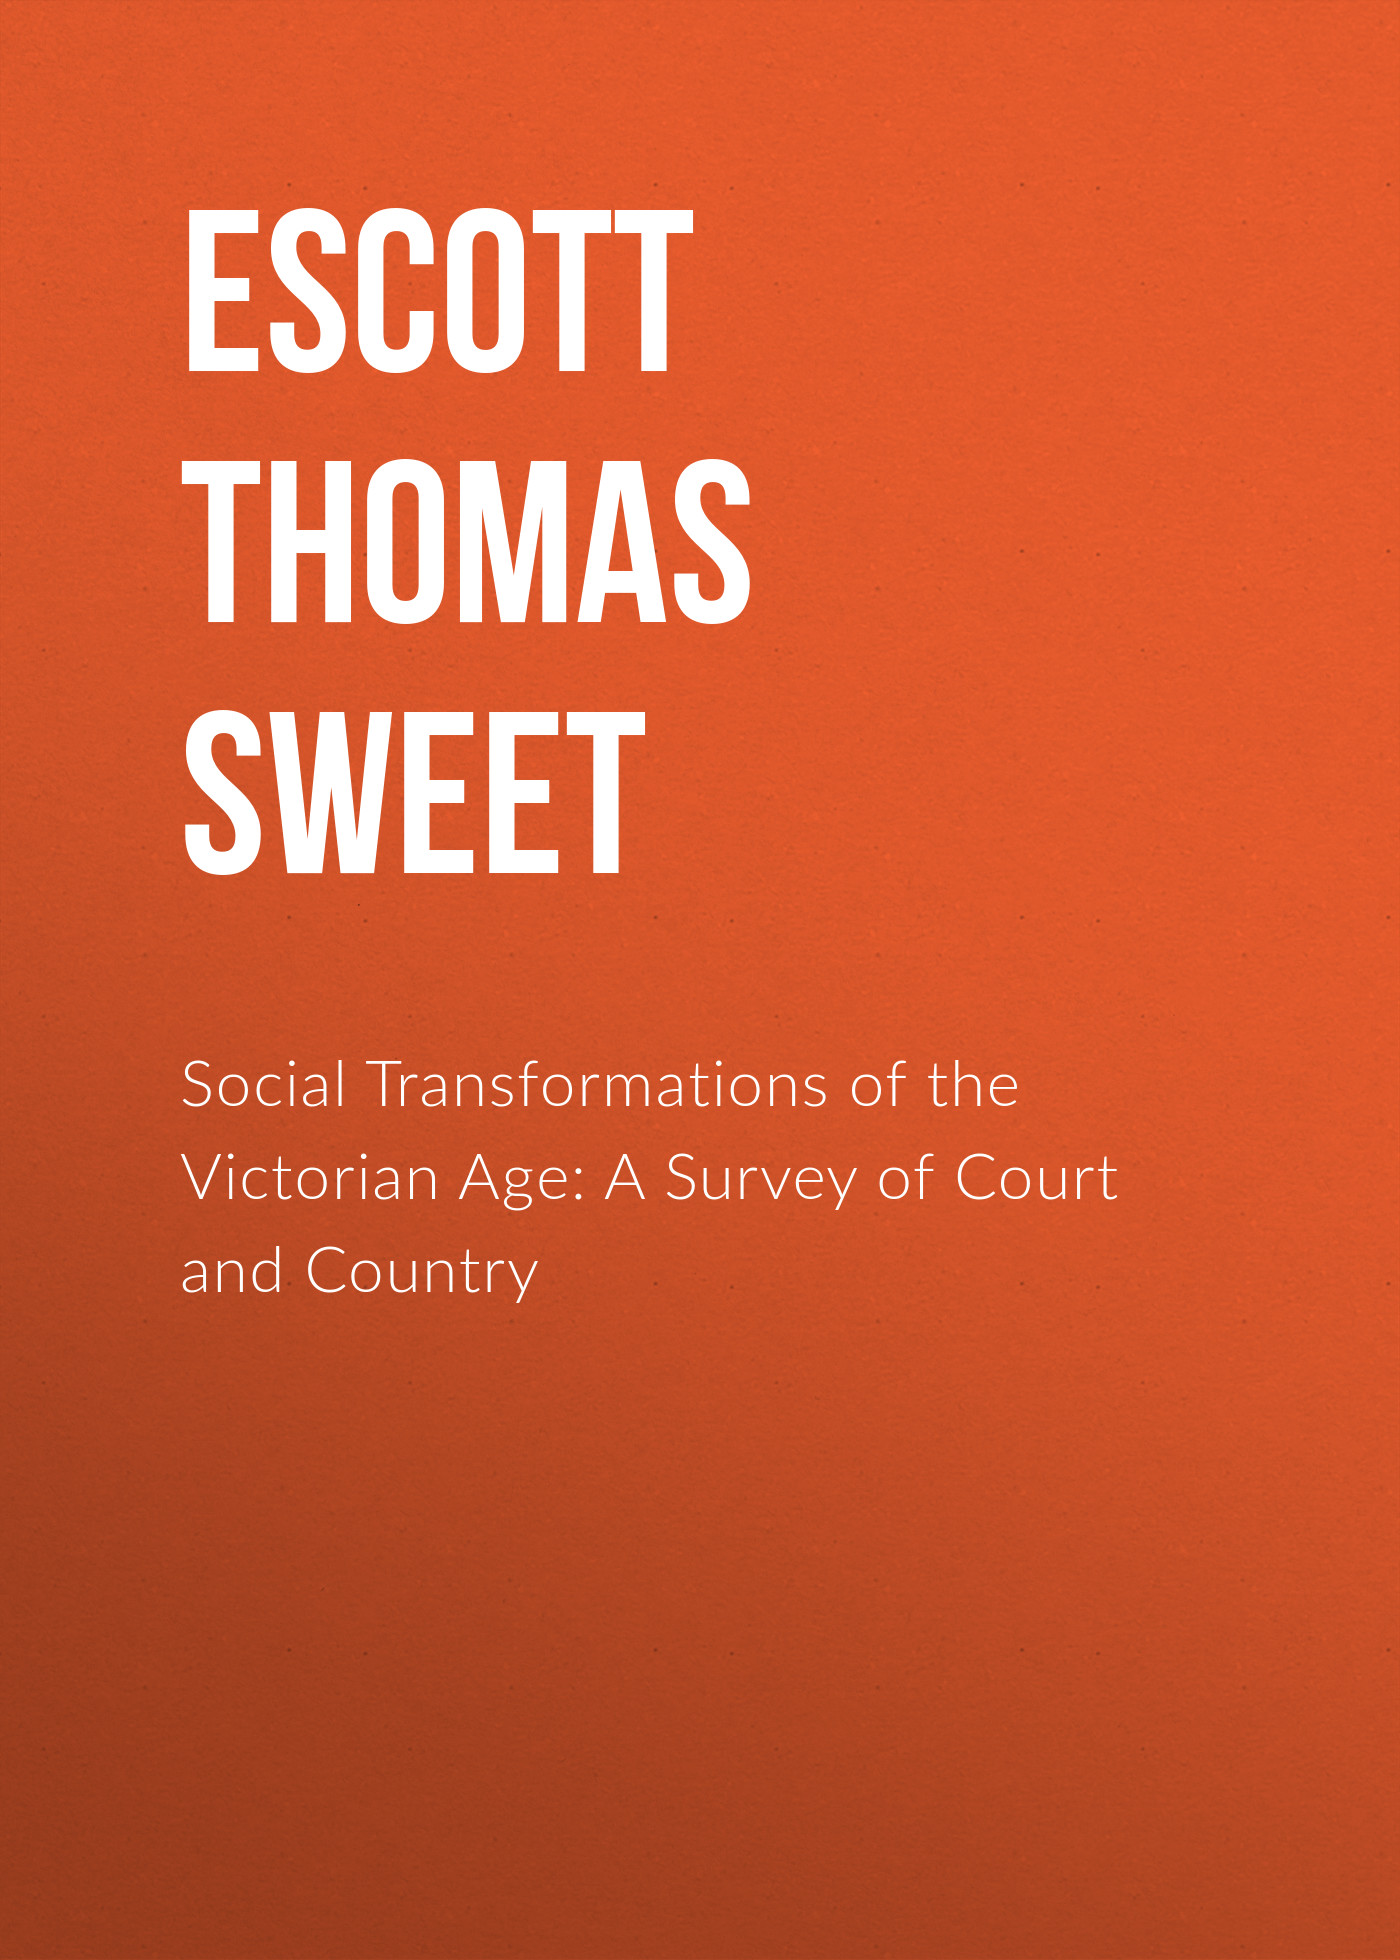 Escott Thomas Hay Sweet Social Transformations of the Victorian Age: A Survey of Court and Country аксессуар чехол для samsung galaxy j7 j730 2017 gecko transparent glossy white s g sgj7 2017 wh